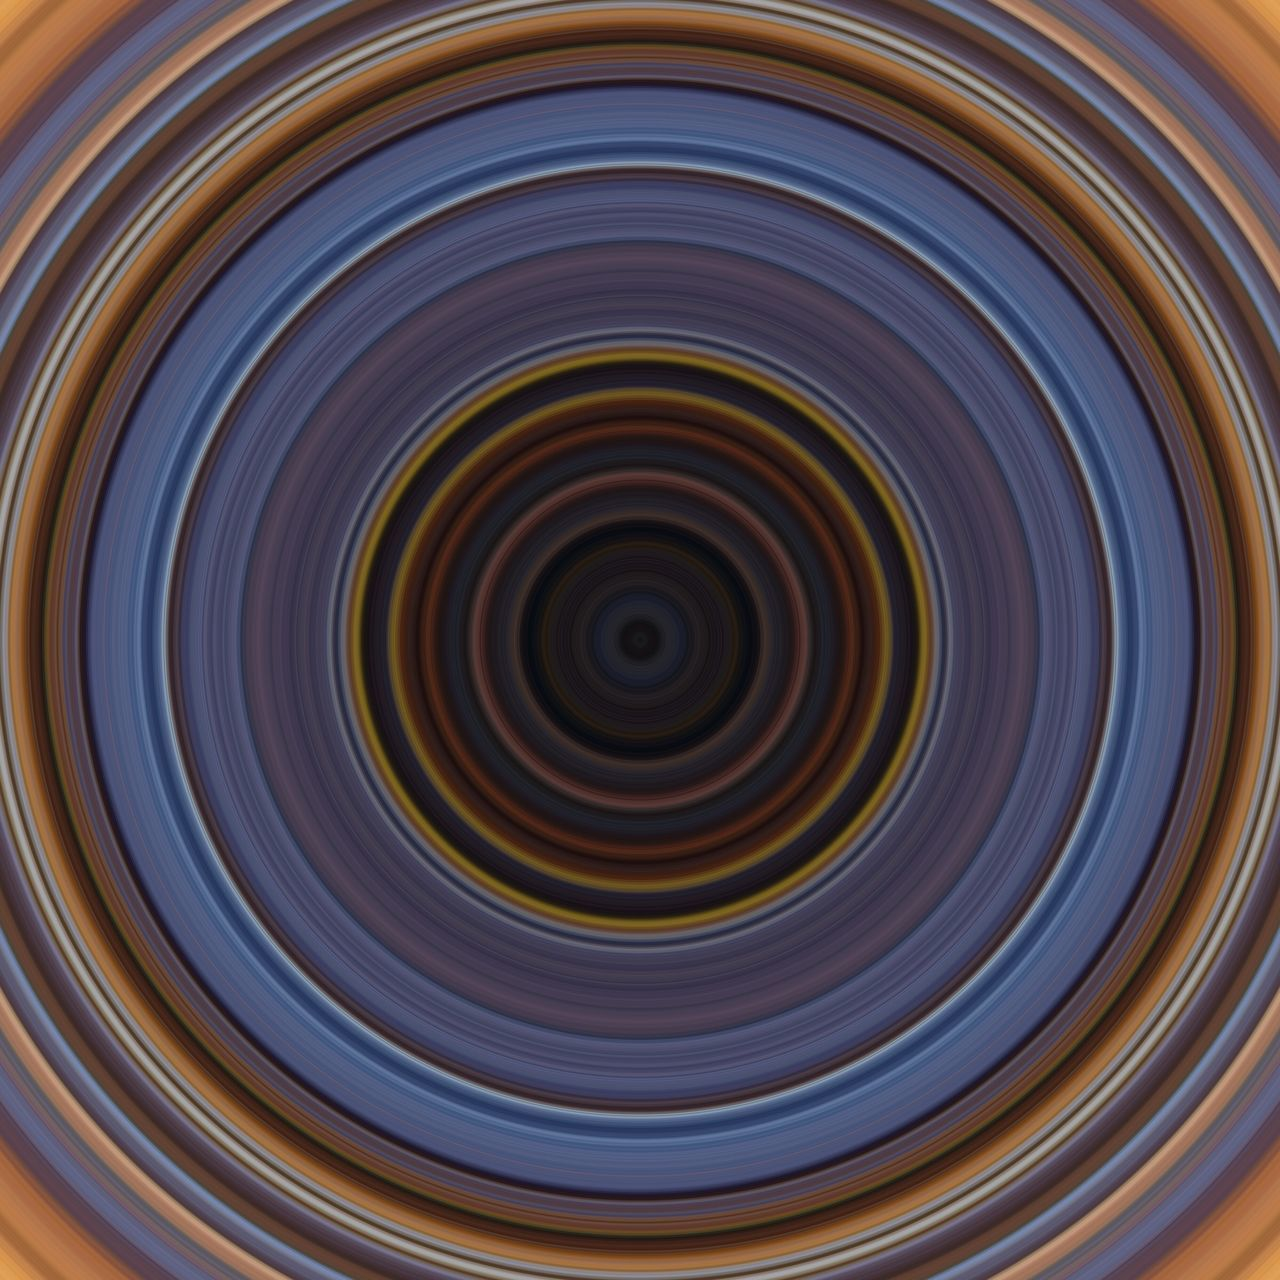 circle, full frame, close-up, no people, concentric, indoors, photography themes, day